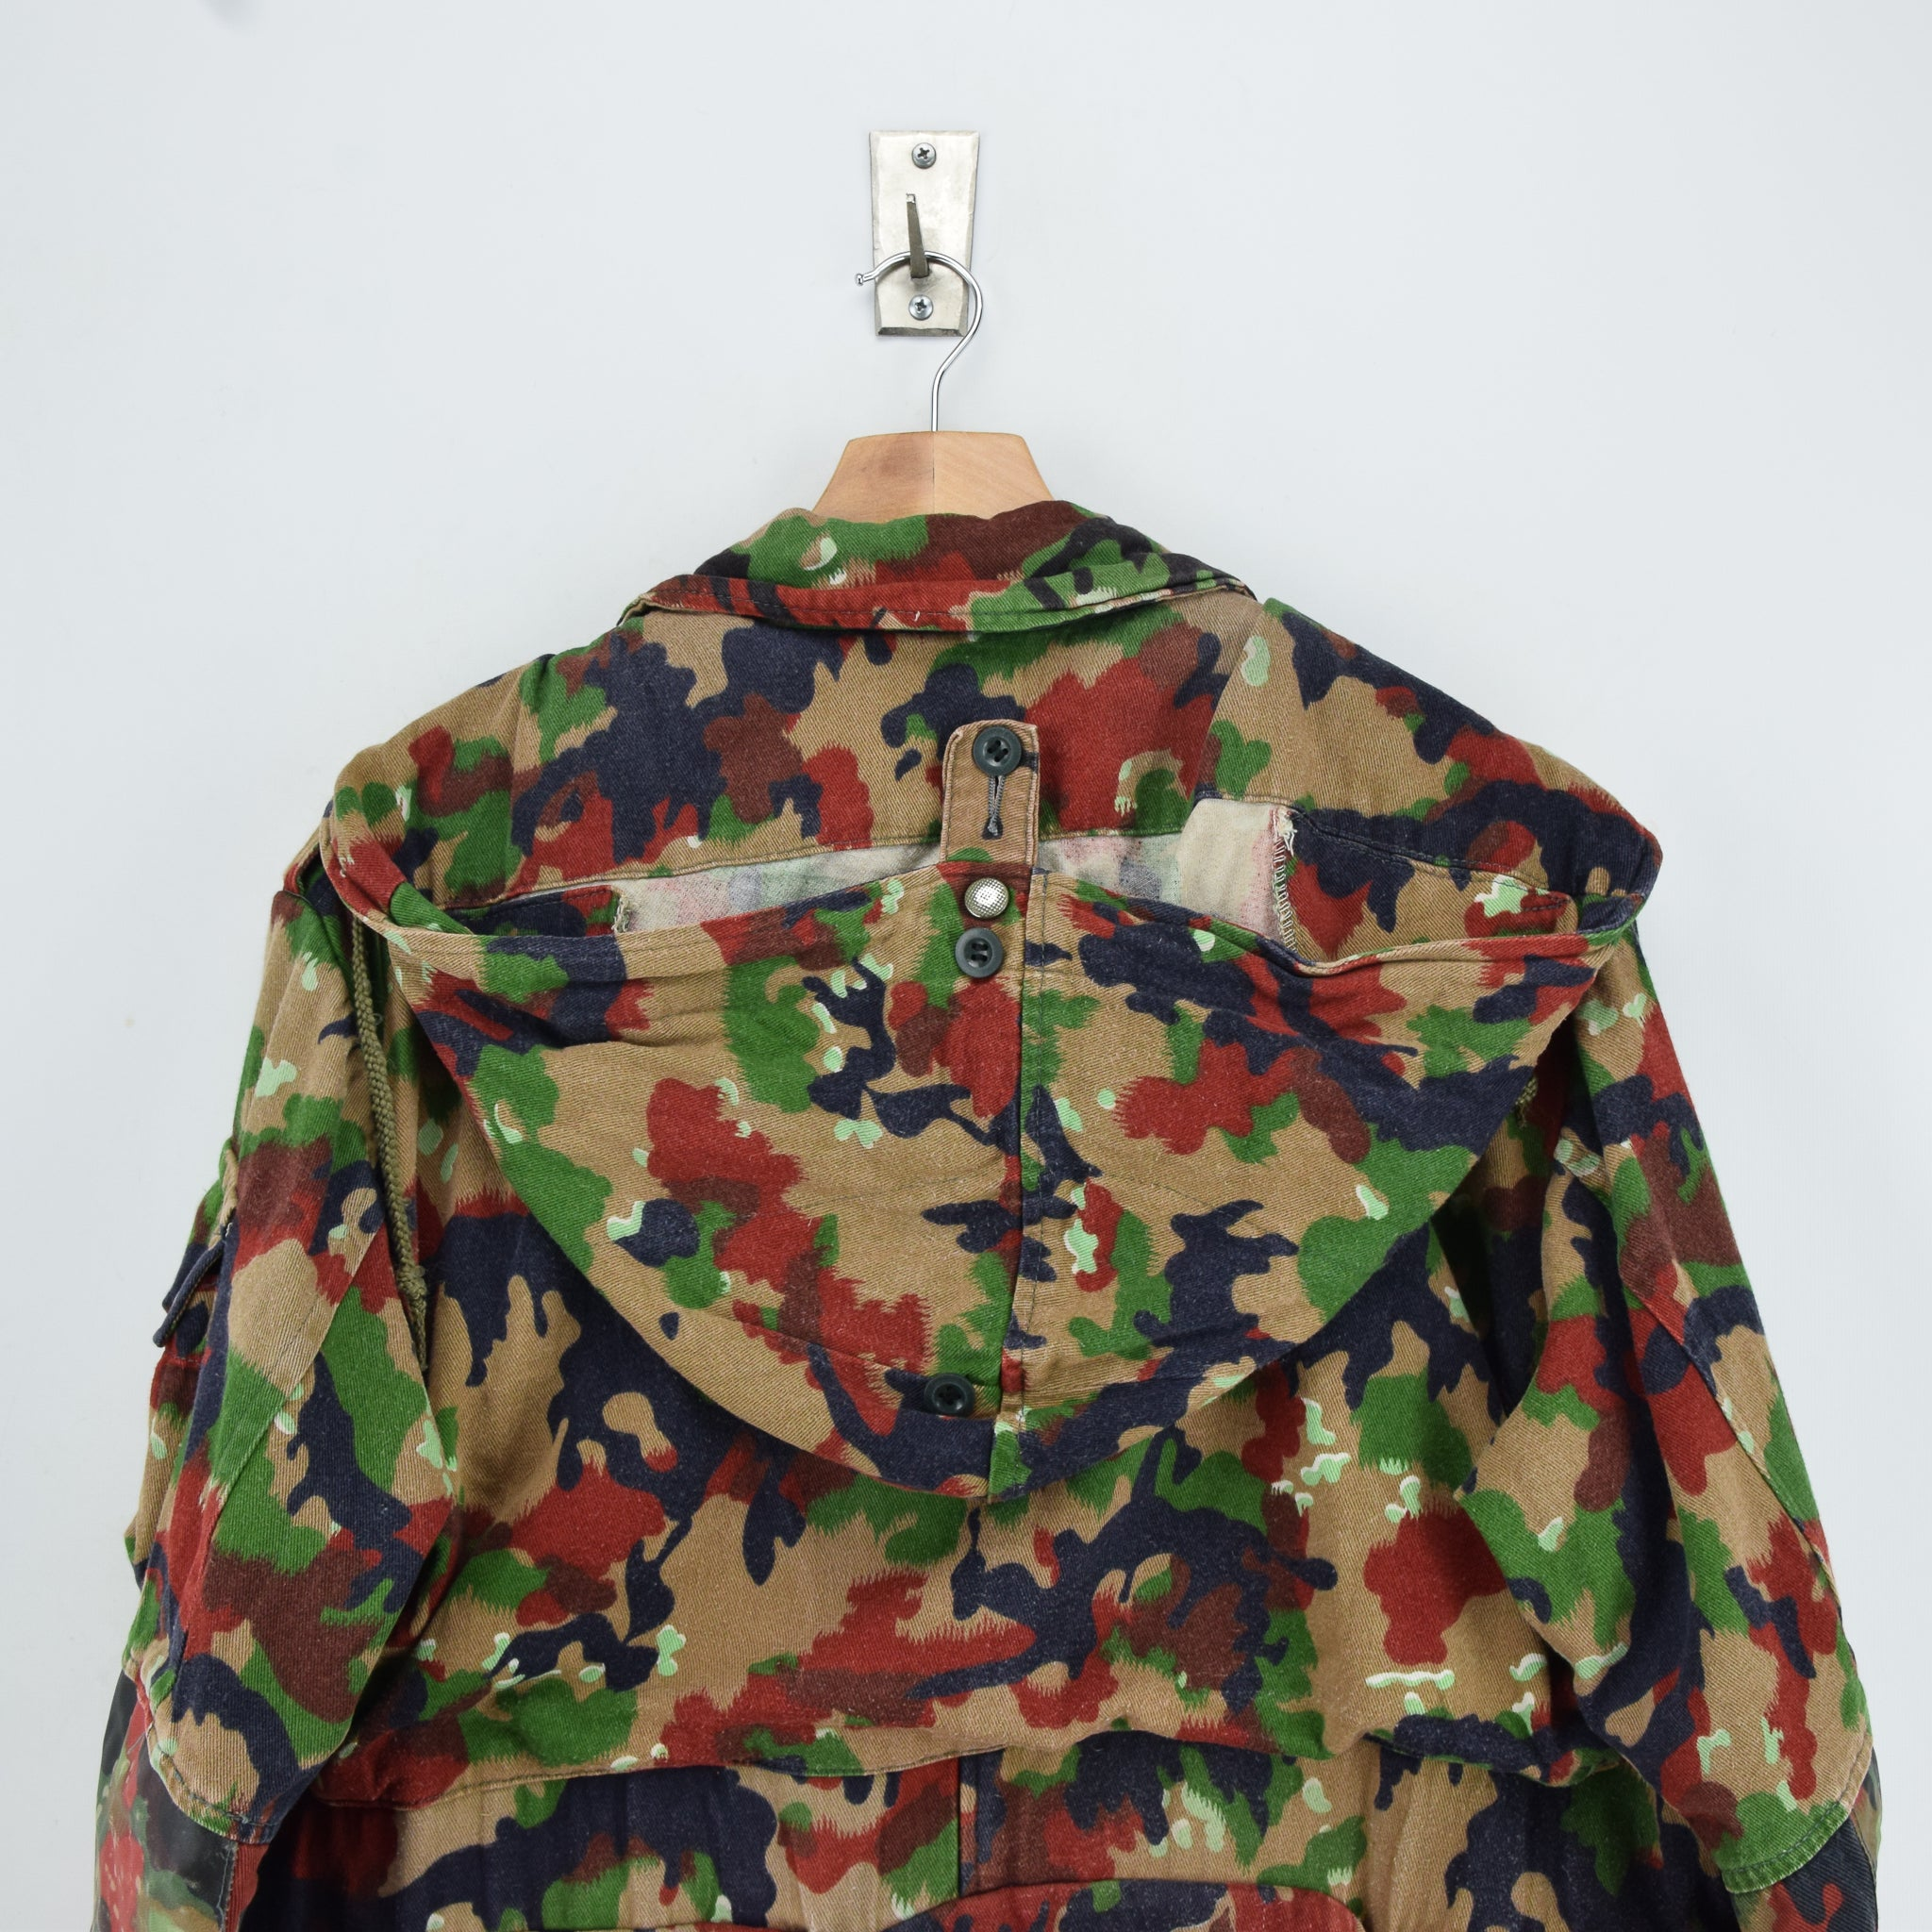 Vintage 70s Swiss Army Alpenflage Camo Sniper Combat Field Jacket S / M shoulders